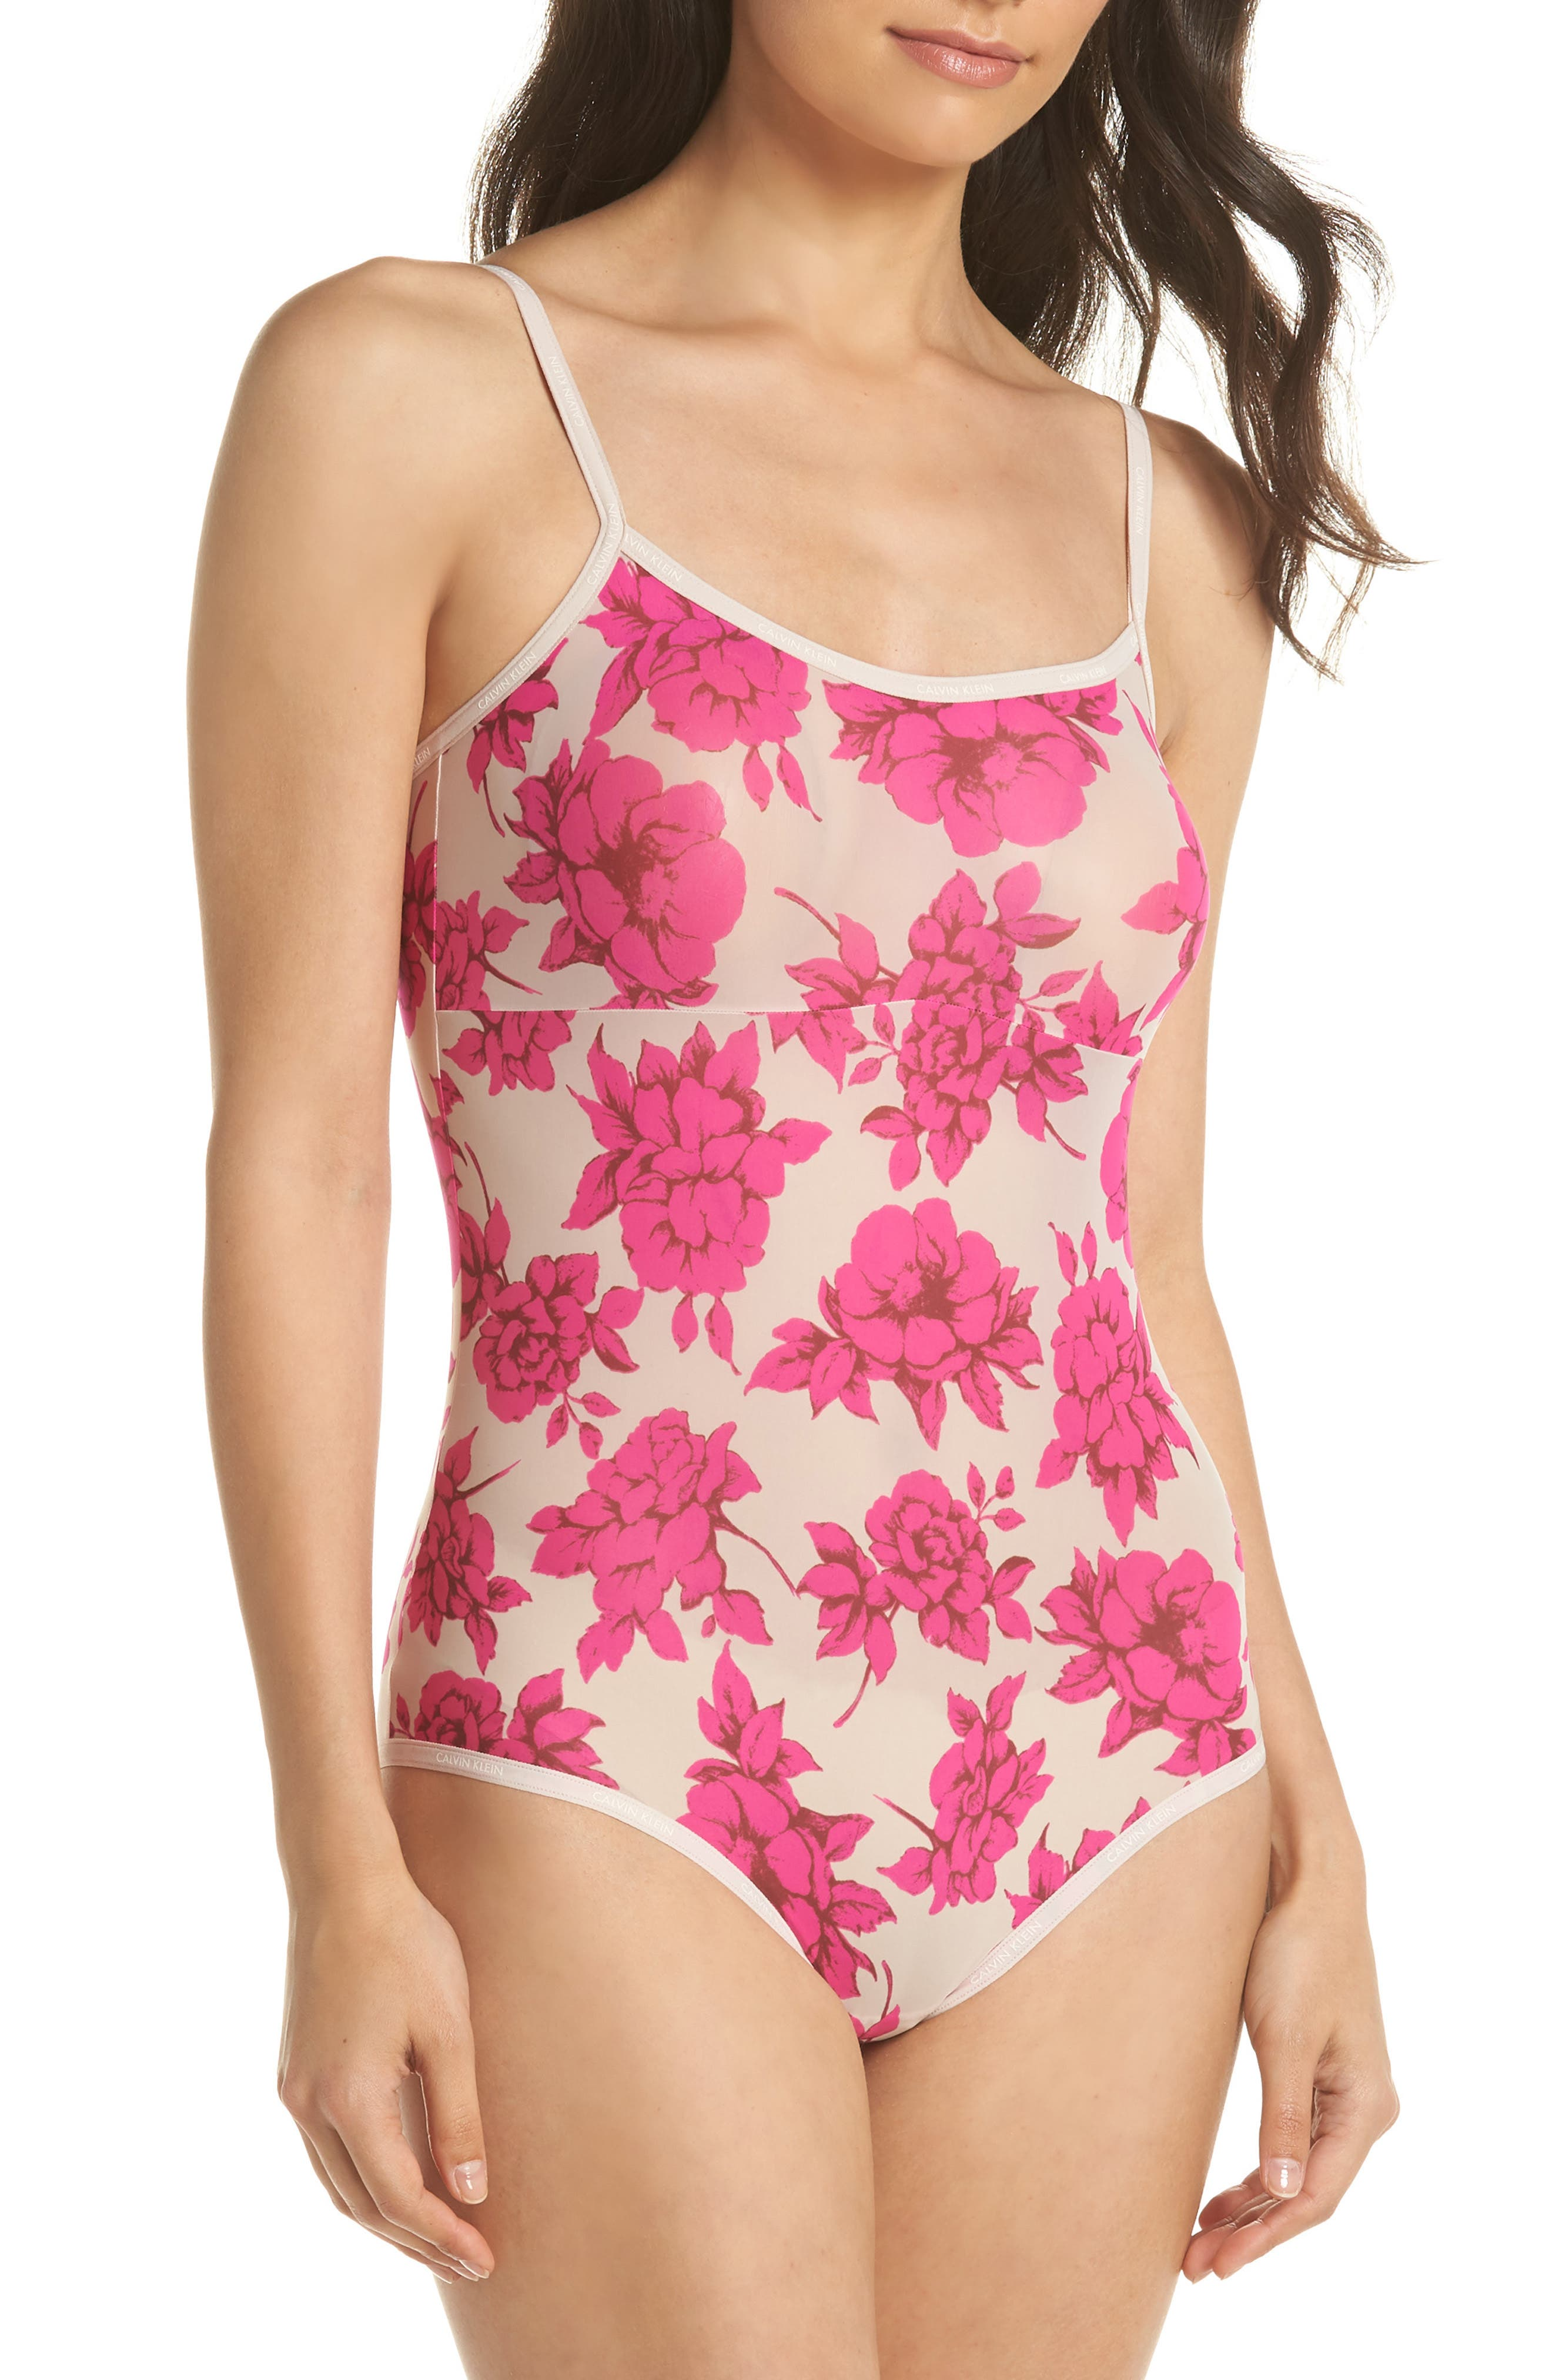 Marquisette Bodysuit,                             Main thumbnail 1, color,                             Darling Roses